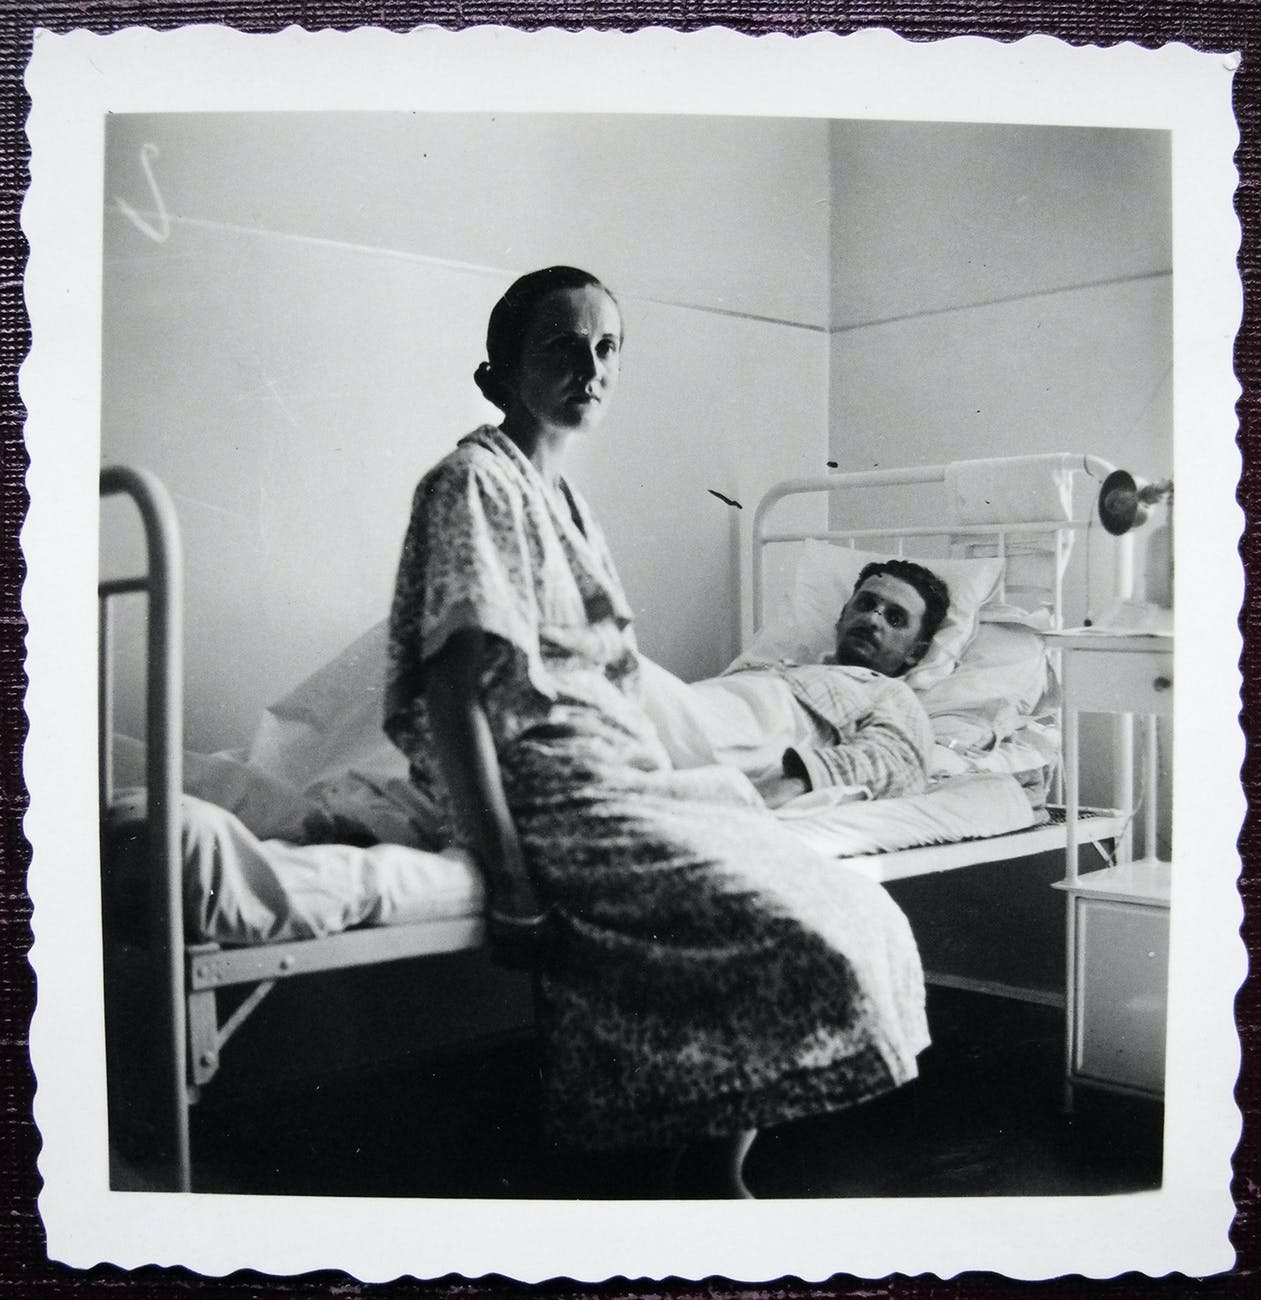 vintage photo of hospital patient with visitor